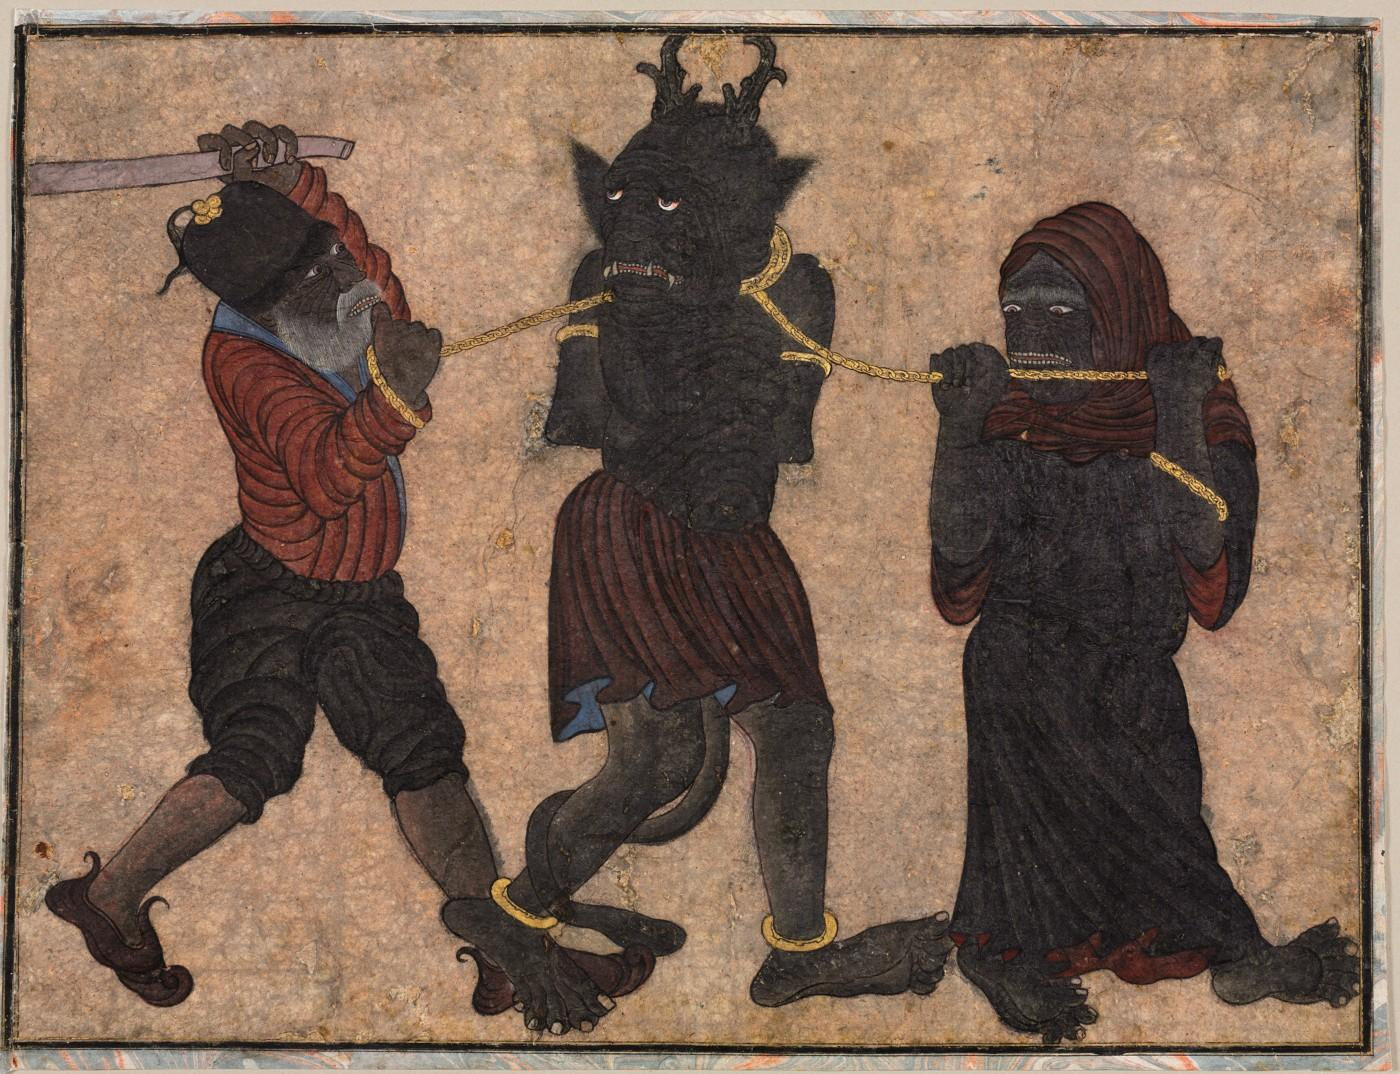 Demon in chains, c. 1453. Style of Muhammad Siya Qalam (Iranian)